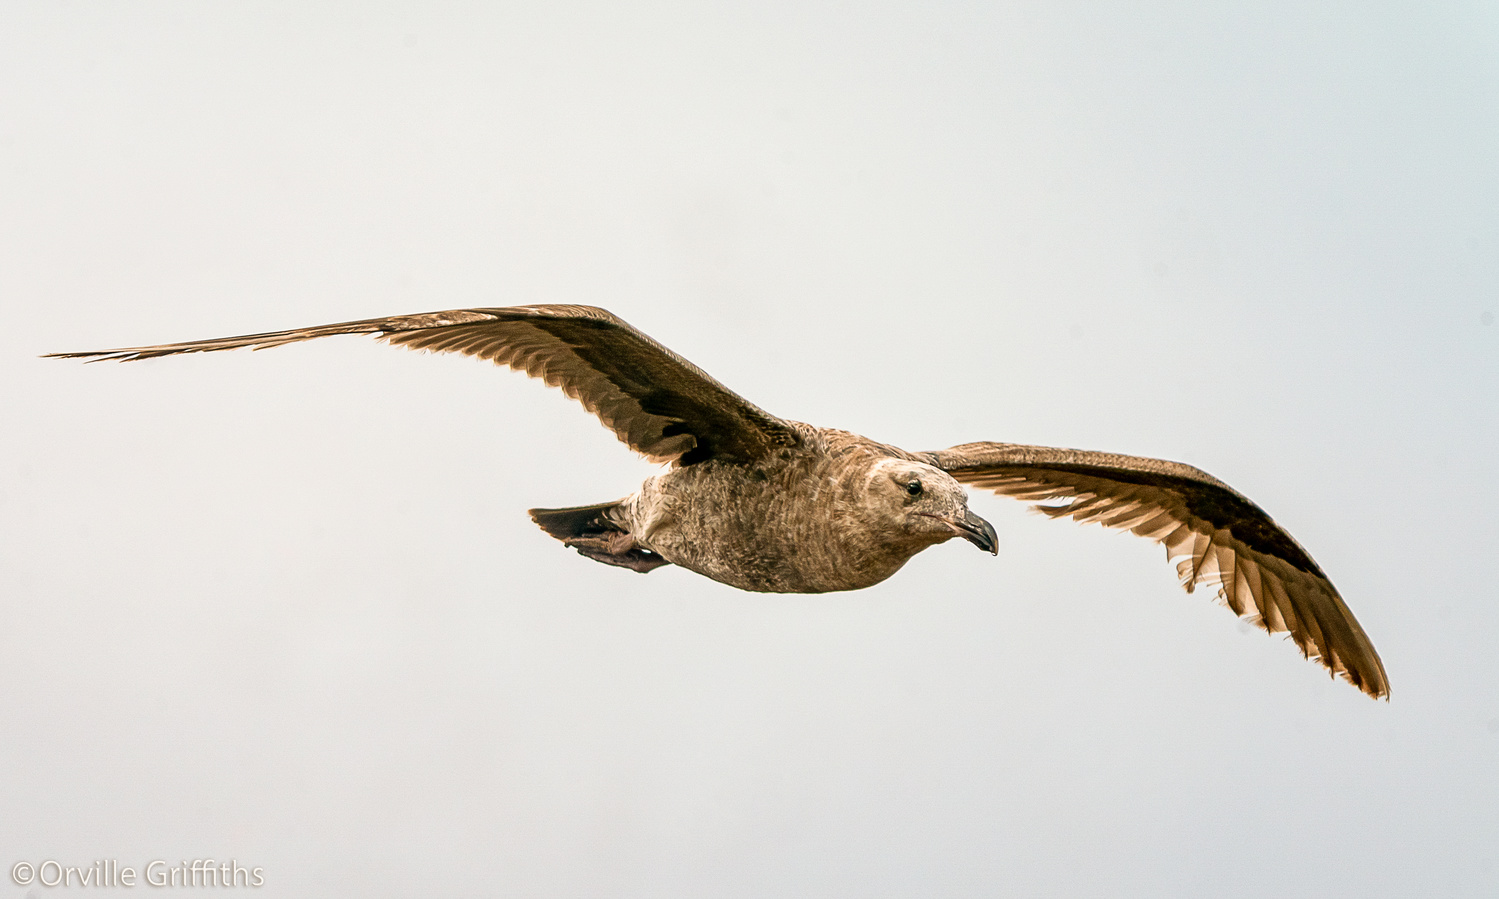 Soaring **SEAGULL** by Orville Griffiths